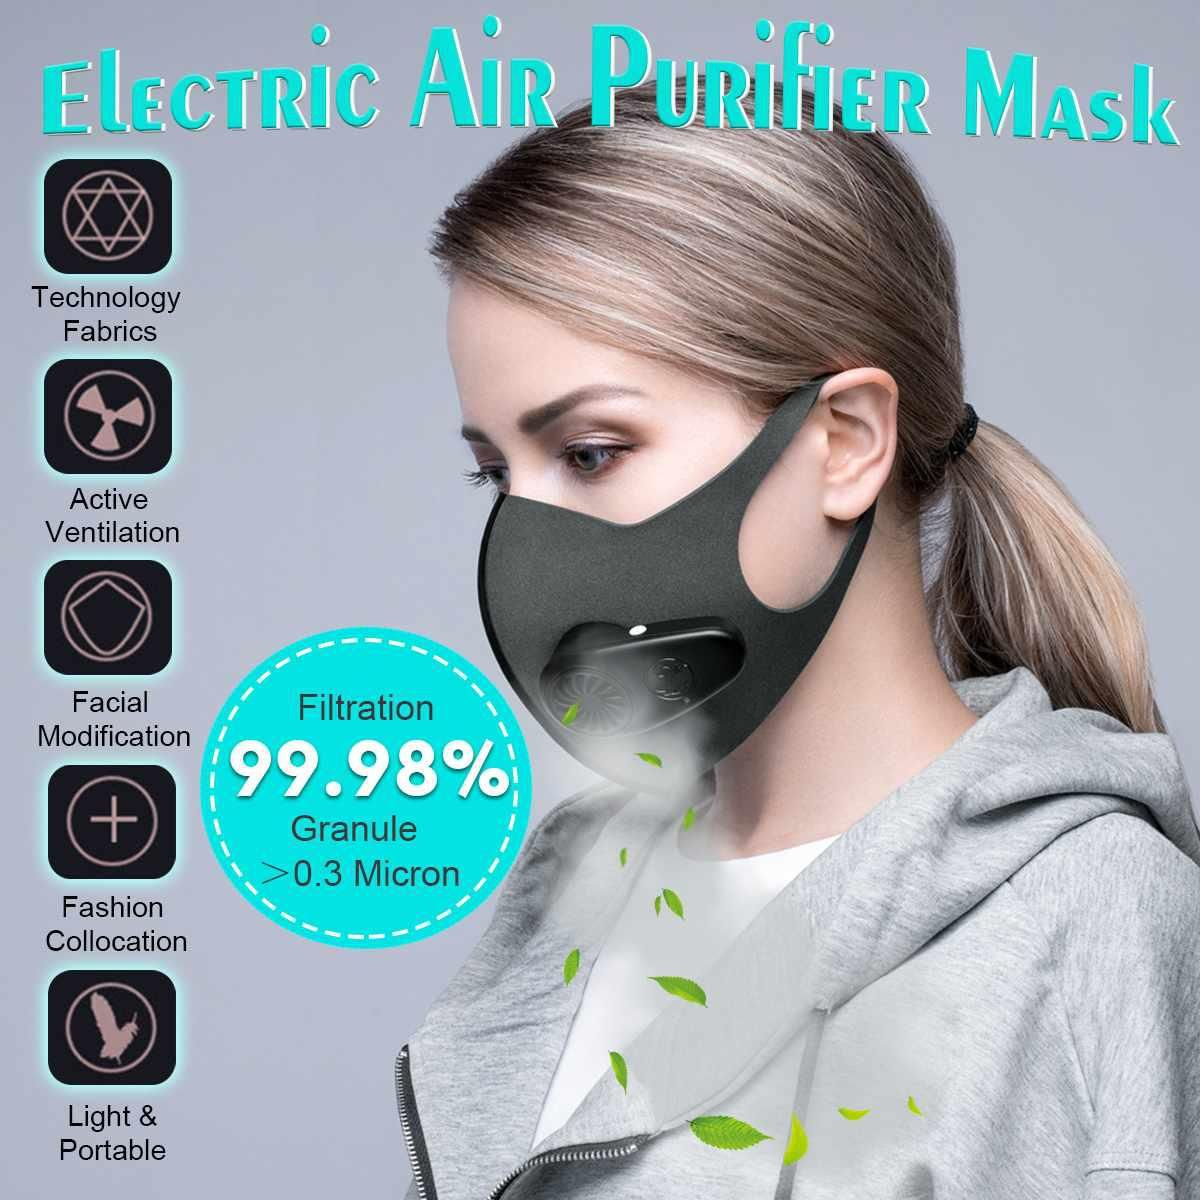 Anti Pollution Air Mask Pm2 5 600mah Filter With Fan Dust Mask Protective Rechargeable Purifier Air Breathing Haze Mouth Ma Anti Pollution Mask Mask Dust Mask